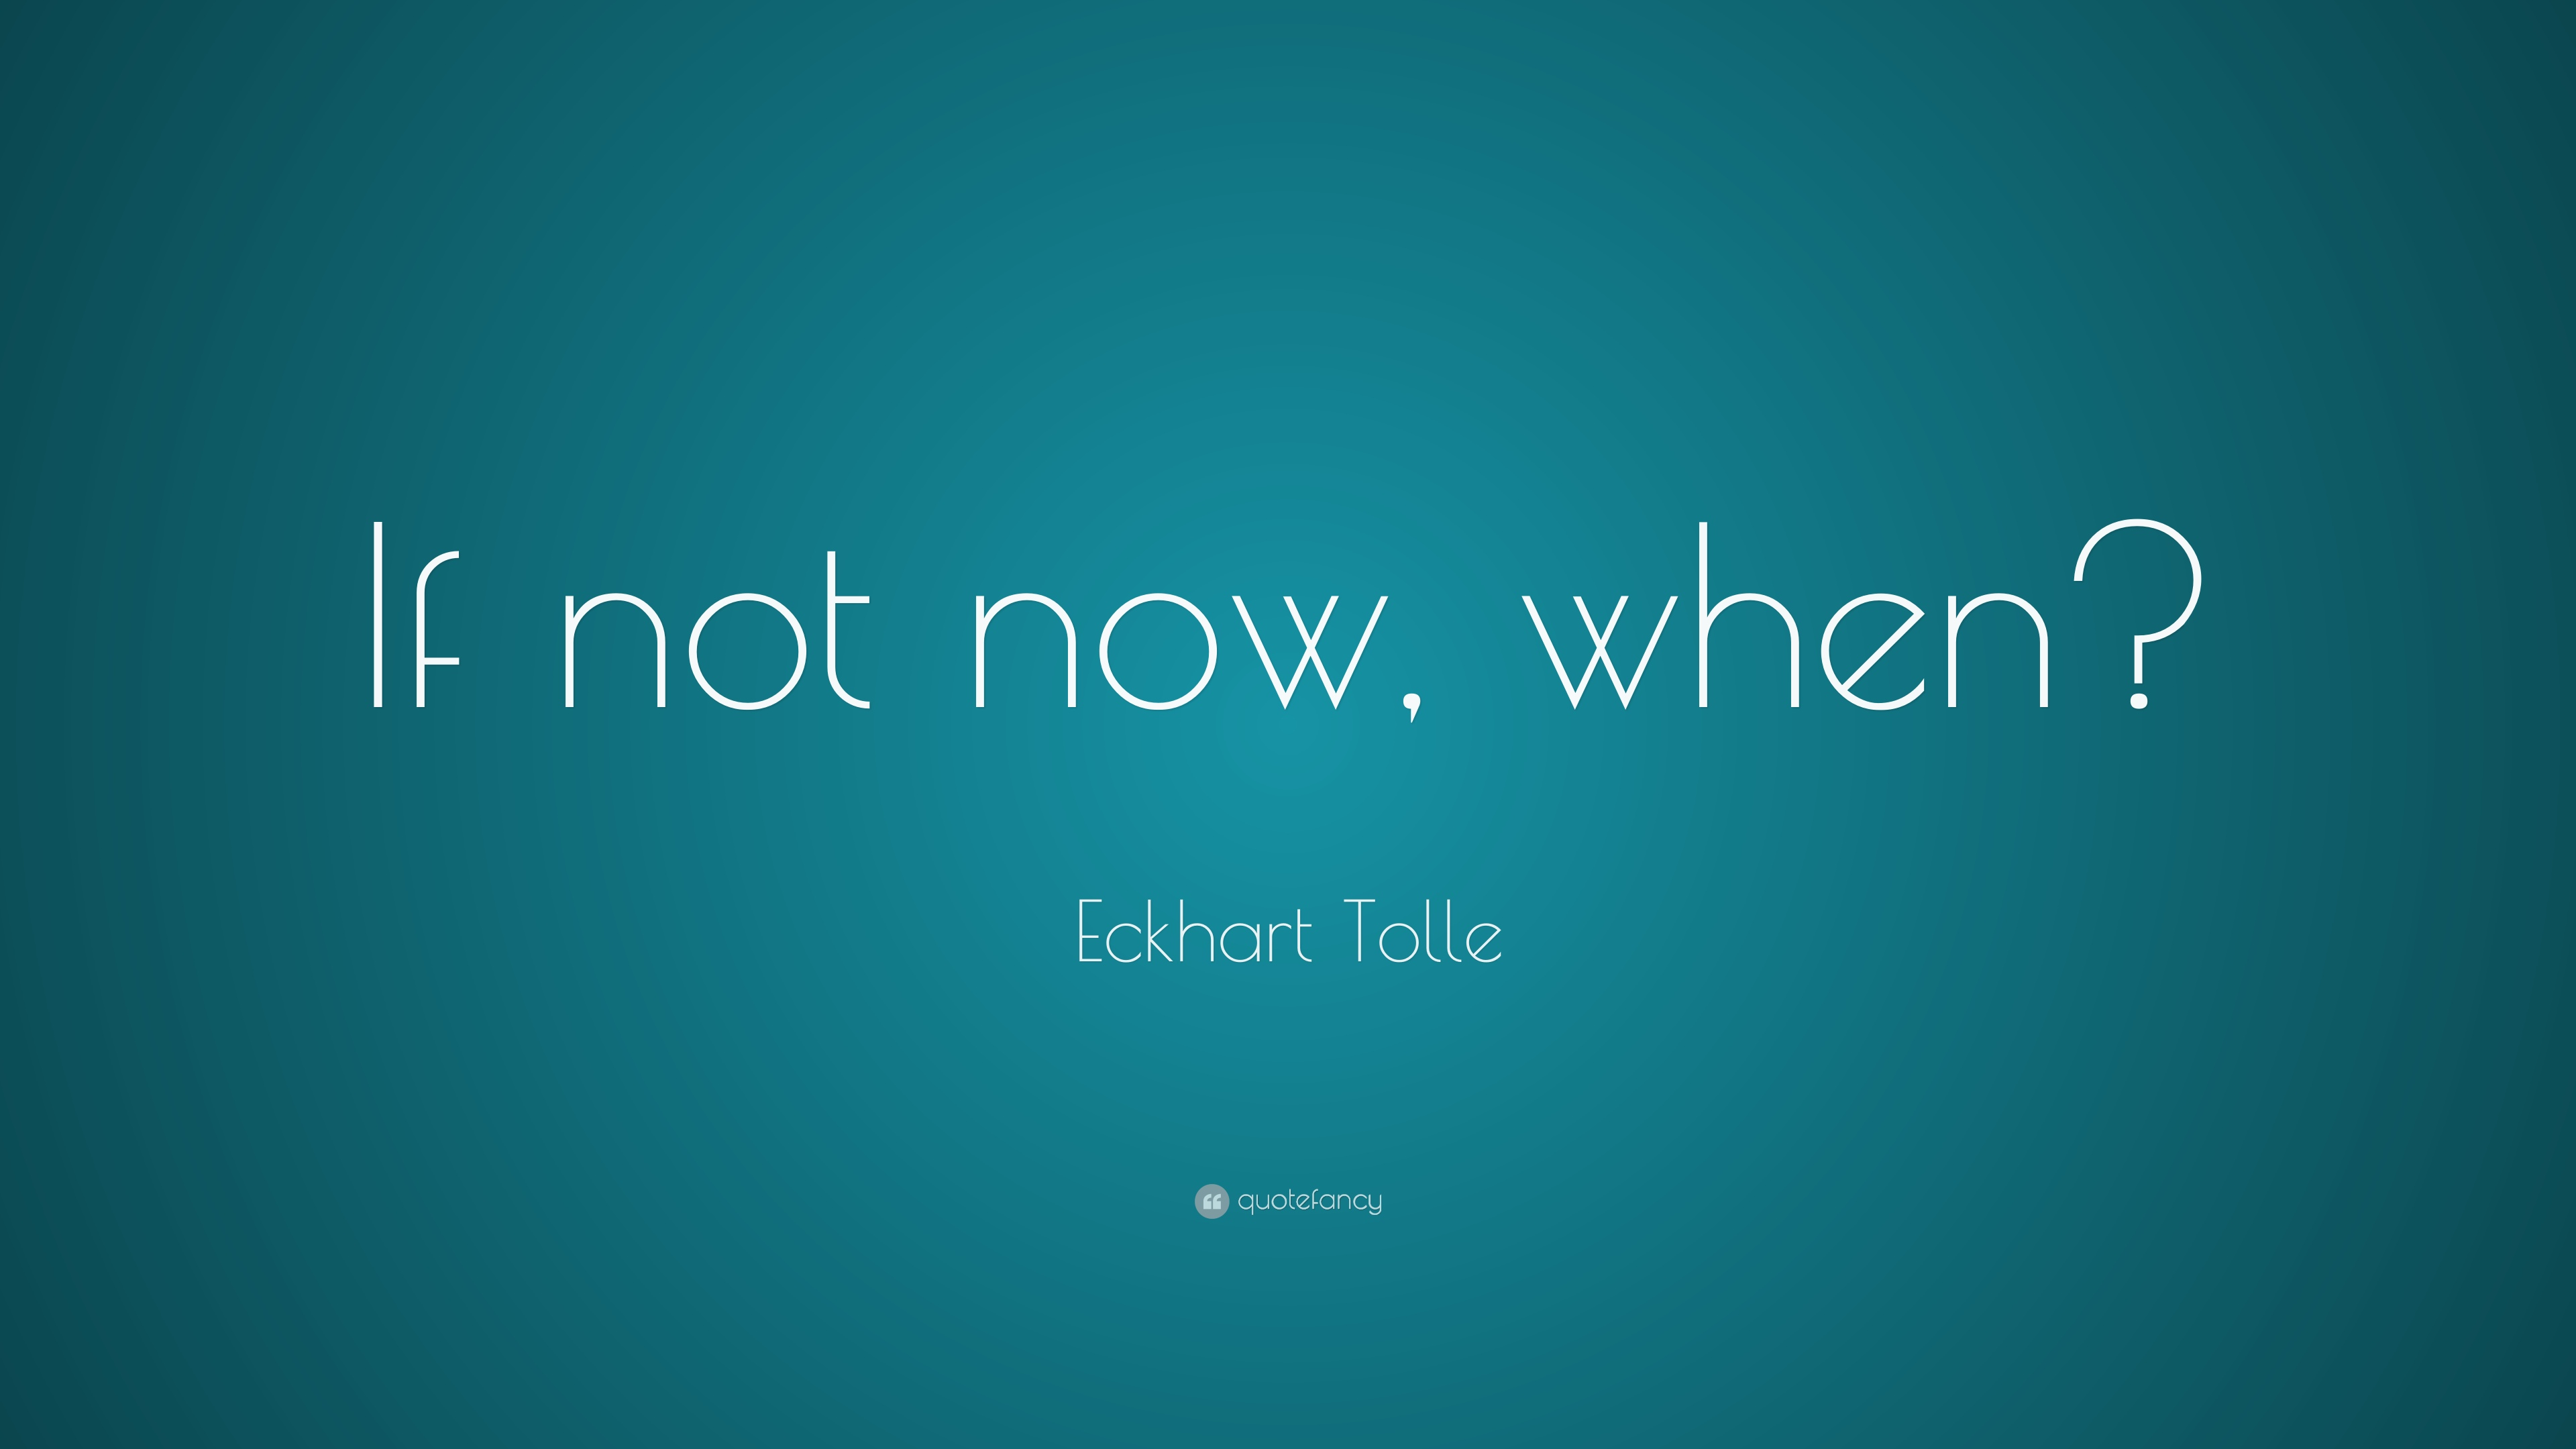 eckhart tolle quotes 100 wallpapers quotefancy